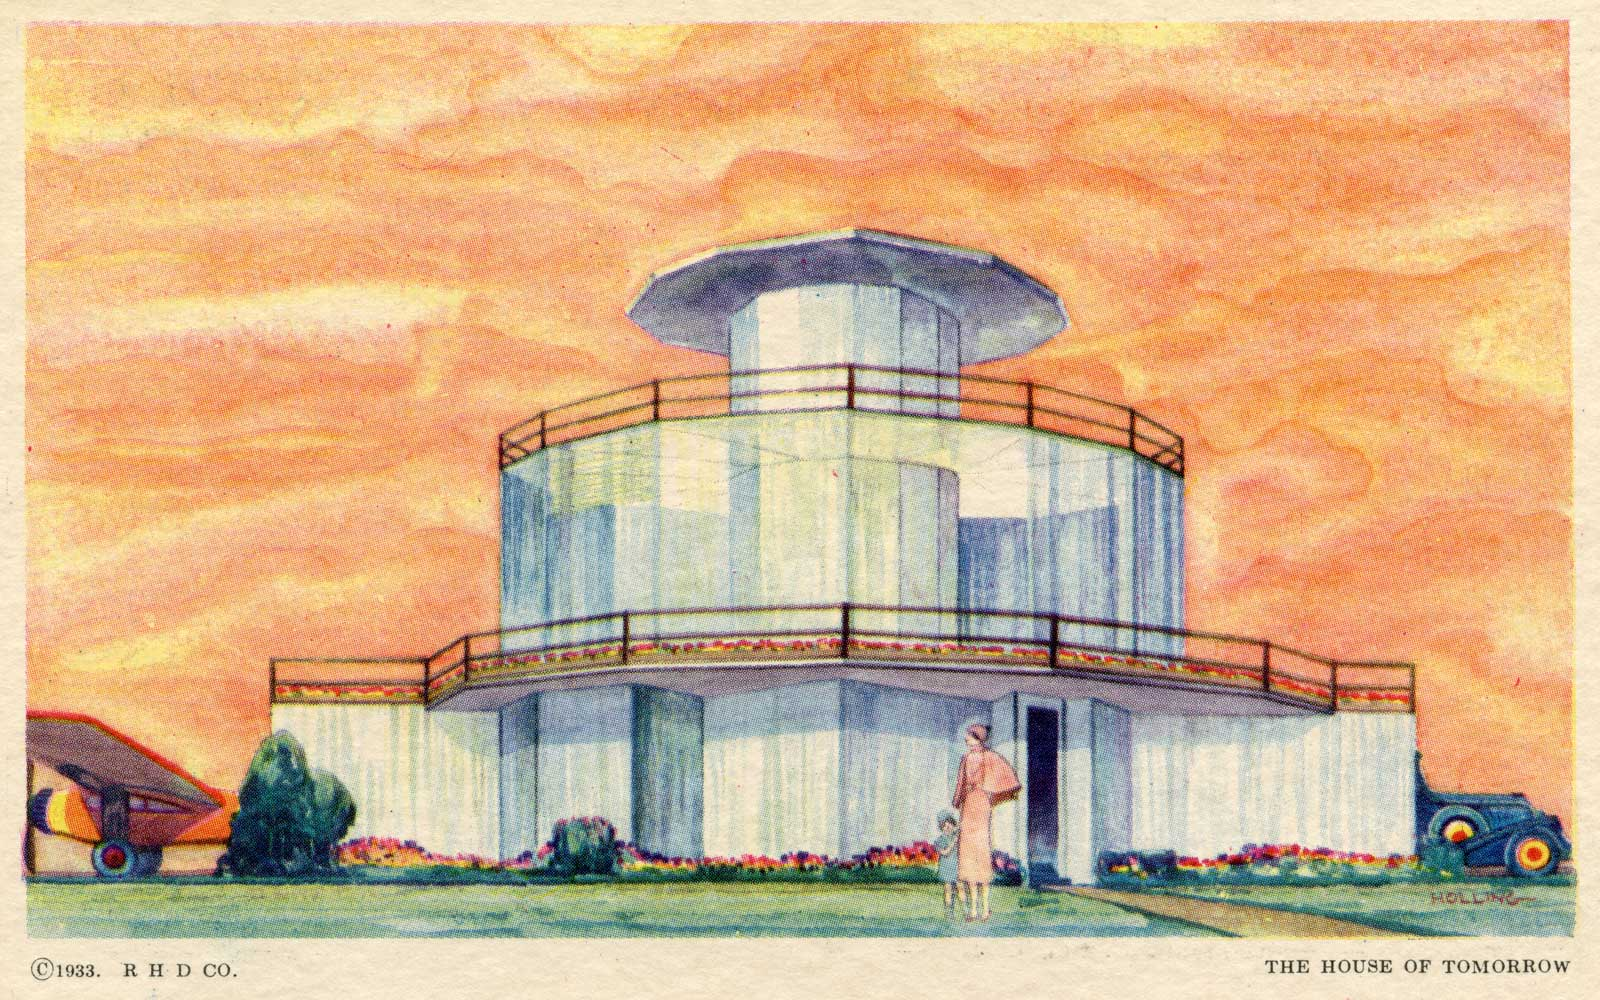 Postcard showing the House of Tomorrow